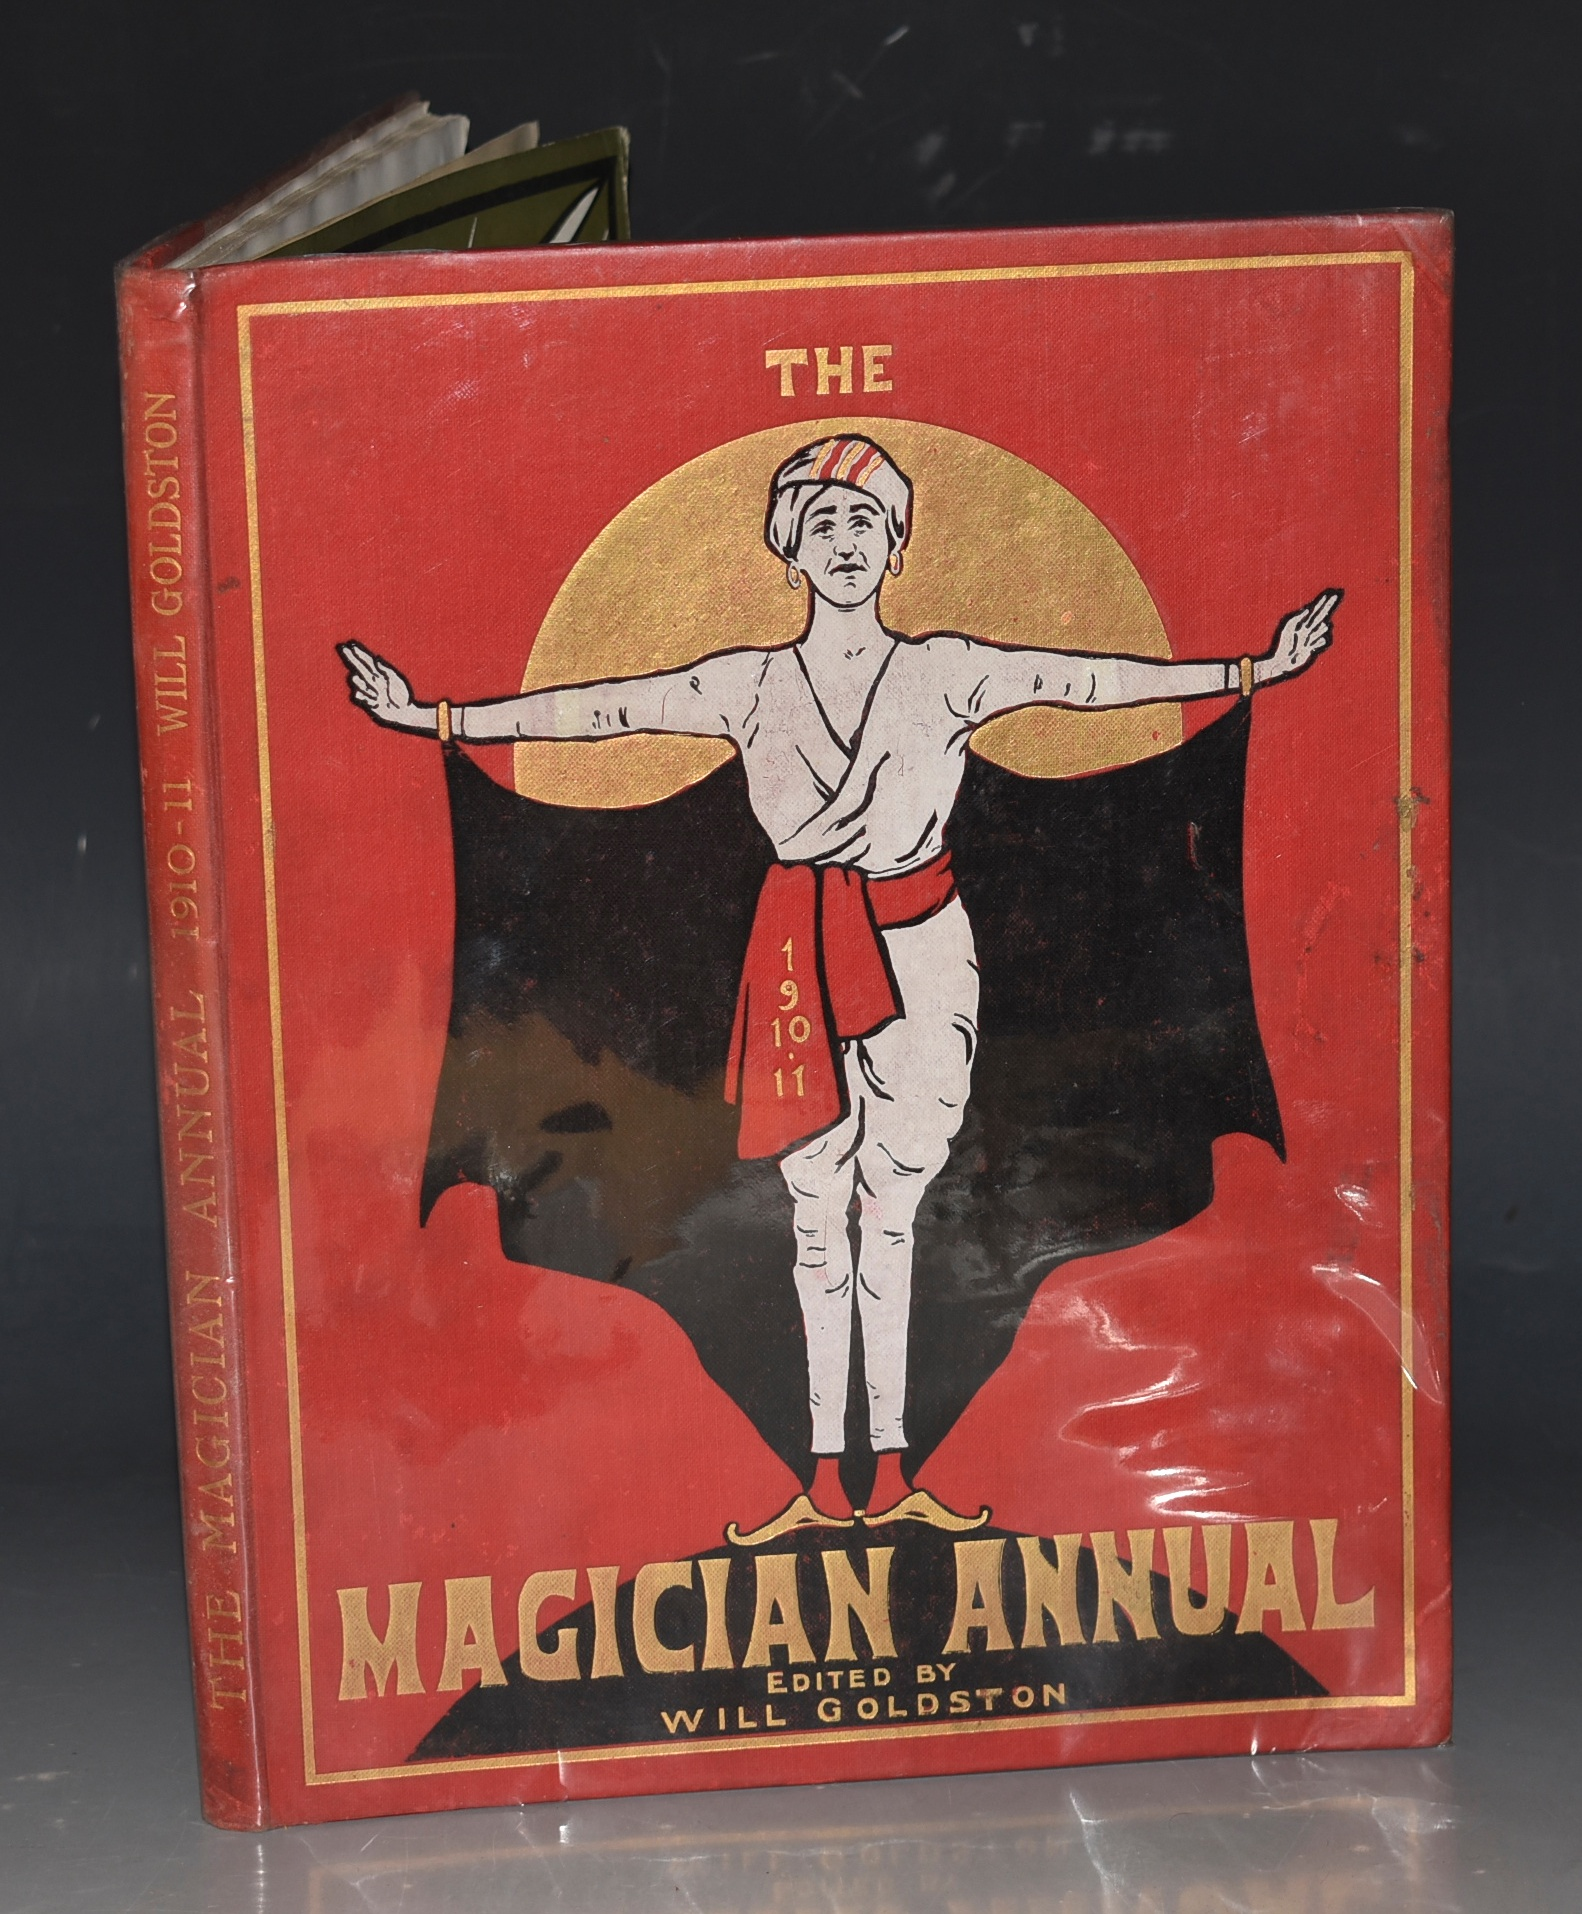 Image for The Magician Annual 1910-11. Complied and Edited by Will Goldston. 102 Pages, 4 Colour Plates, Over 300 Illustrations.